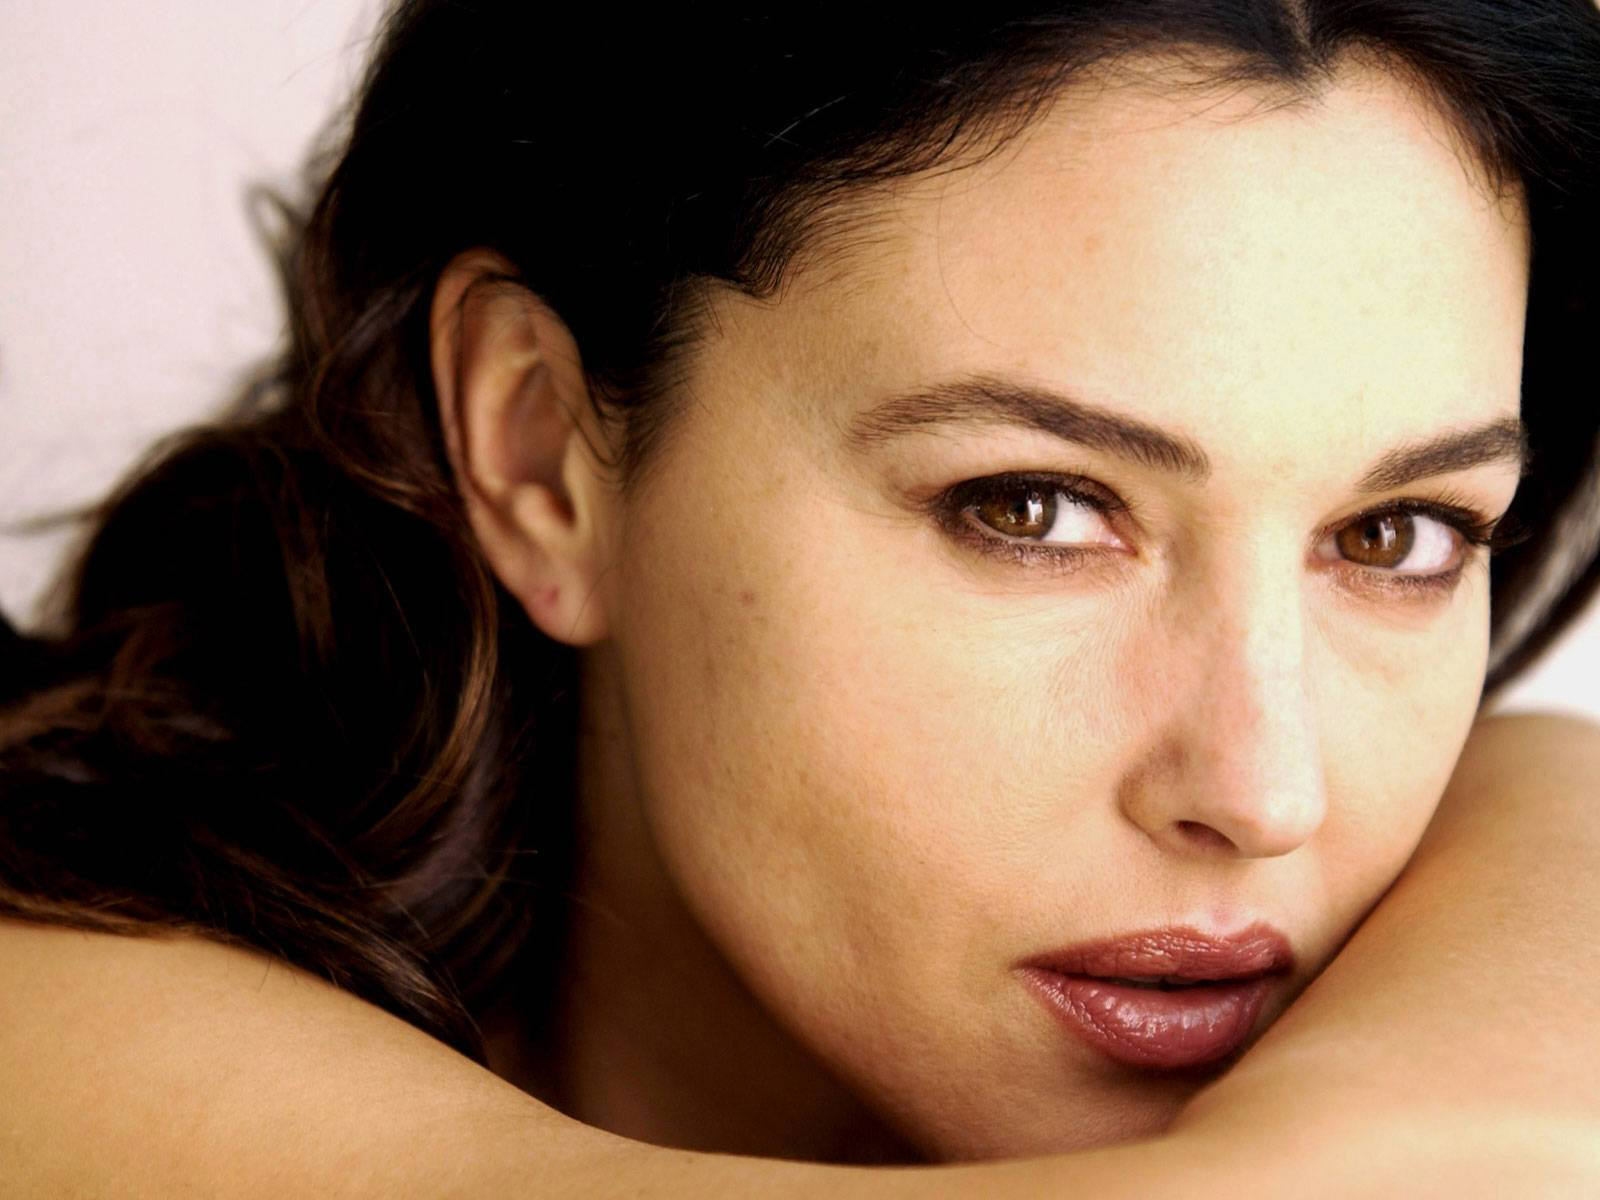 Monica-Bellucci-monica-bellucci-14168862-1600-1200